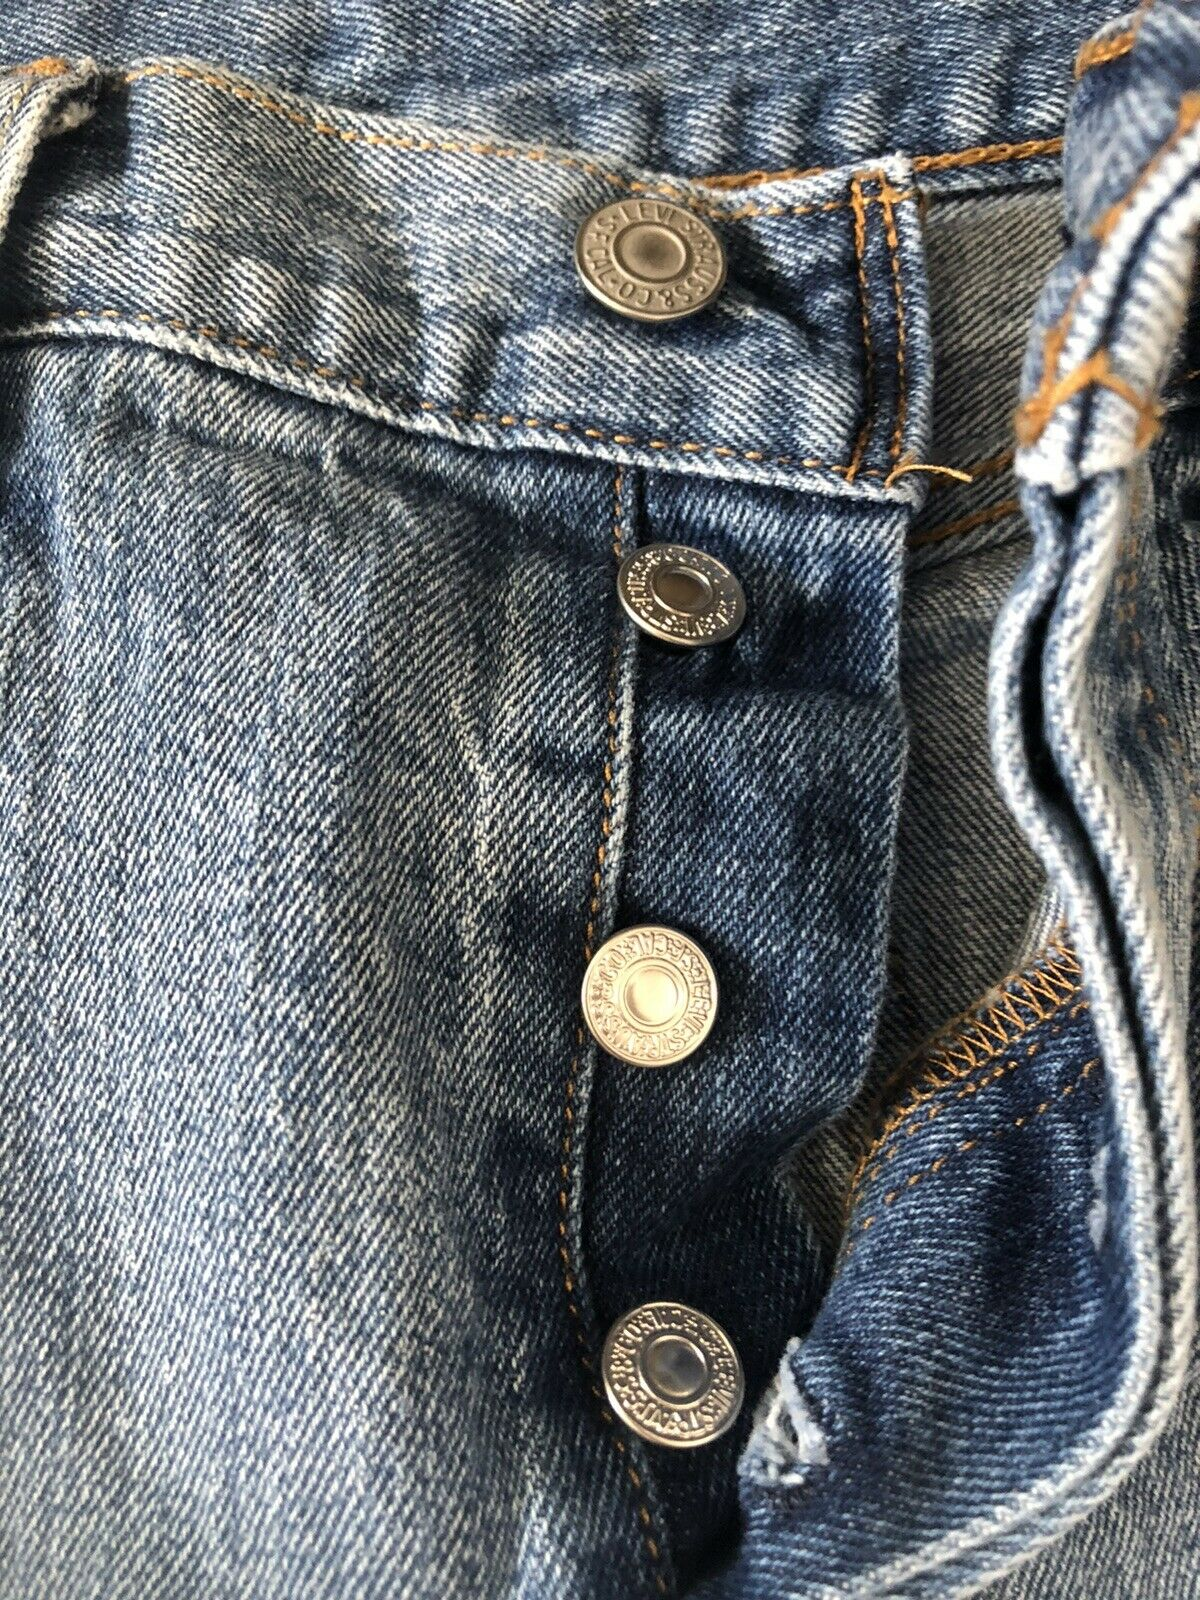 levis 501 made in usa W25L32 - image 2